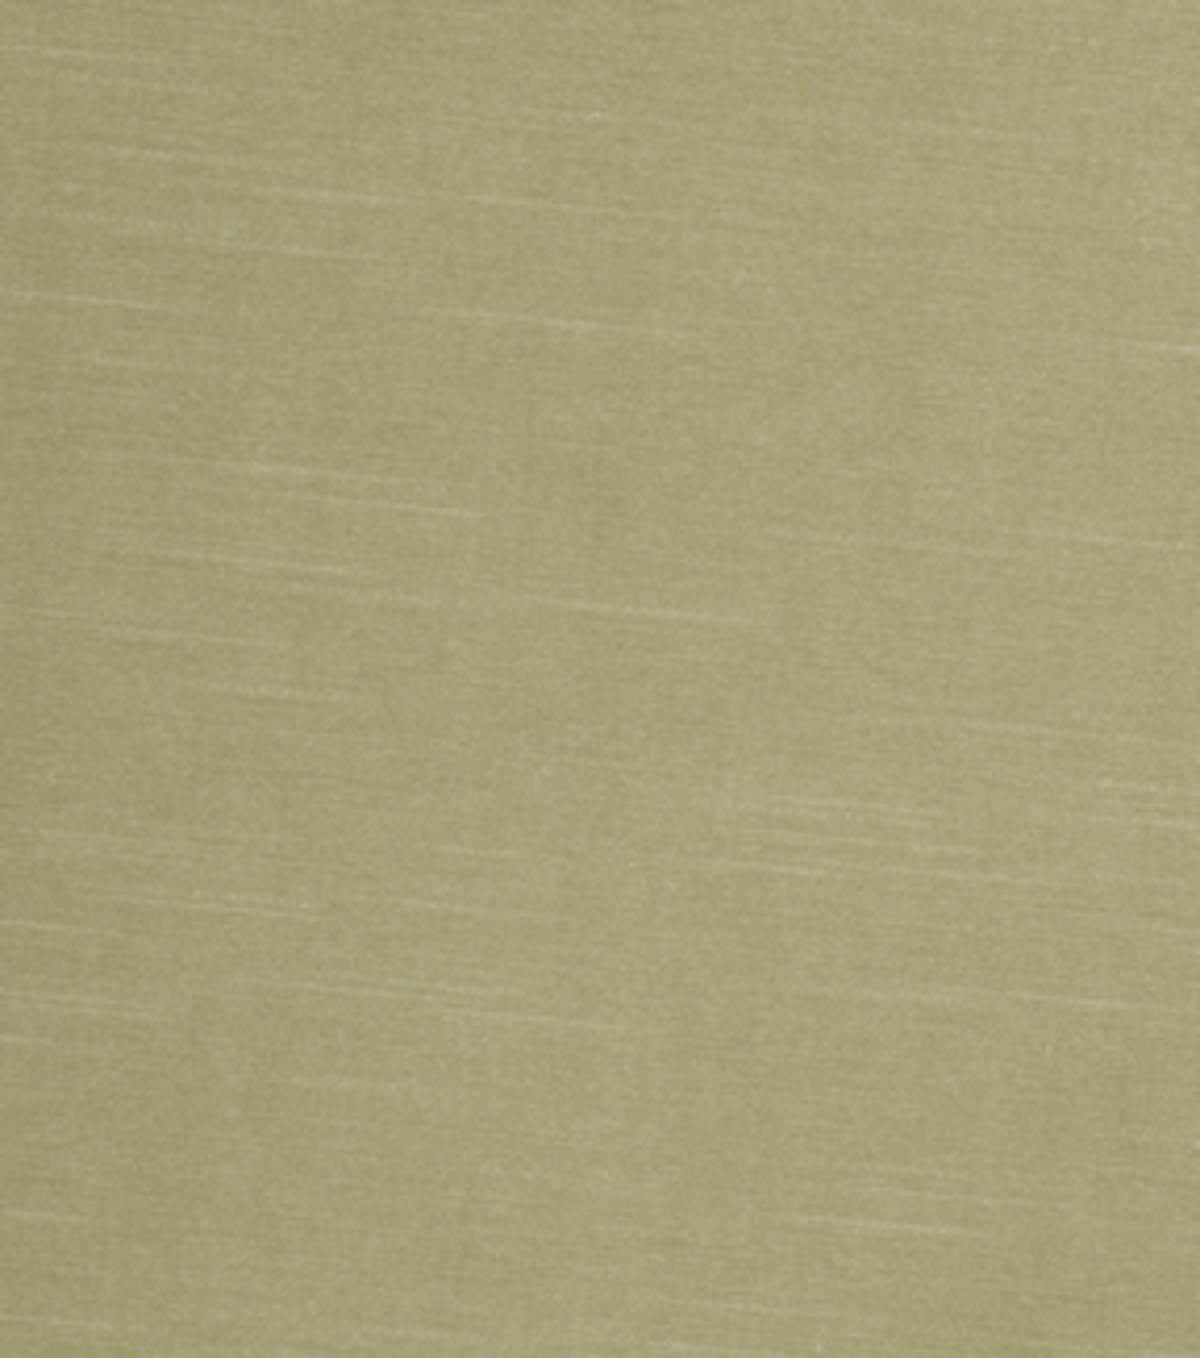 Home Decor 8\u0022x8\u0022 Fabric Swatch-Richloom Studio Silky Pimento